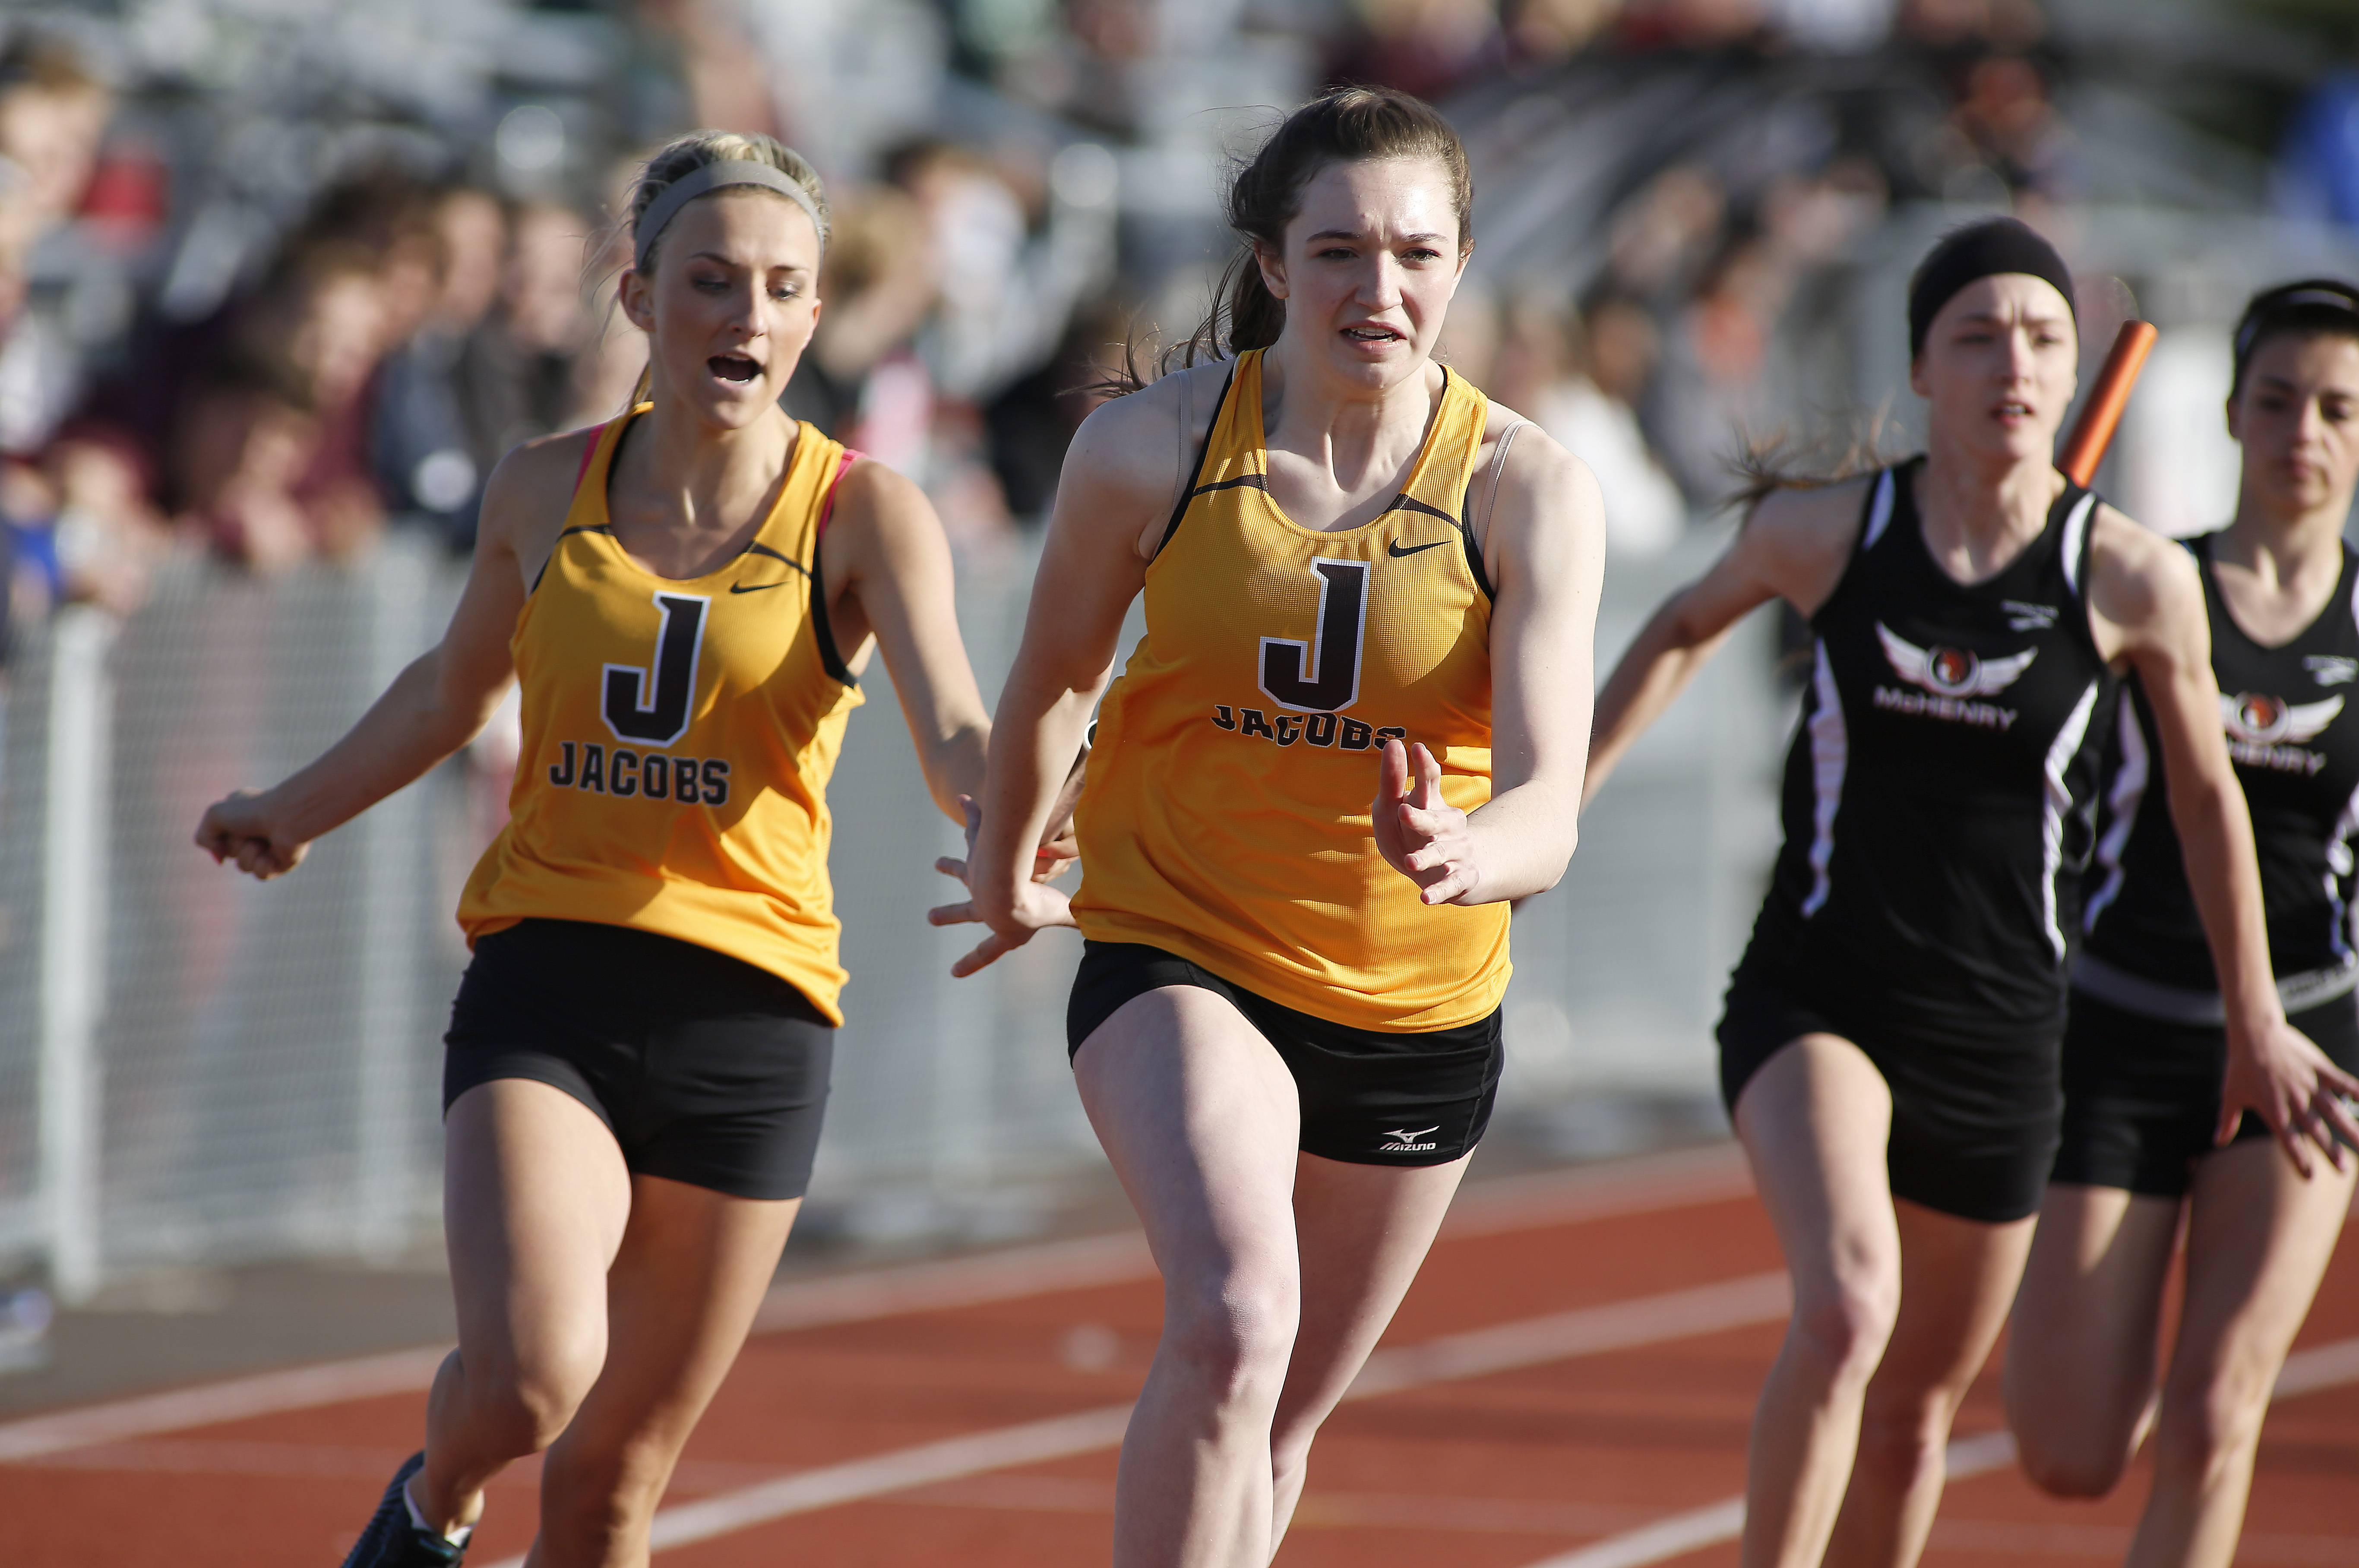 Jacob's Lexi Post, left, and Rachael Holstein hand off the baton in the 4x100 relay during the McHenry County Track and Field Championships Friday in Huntley.